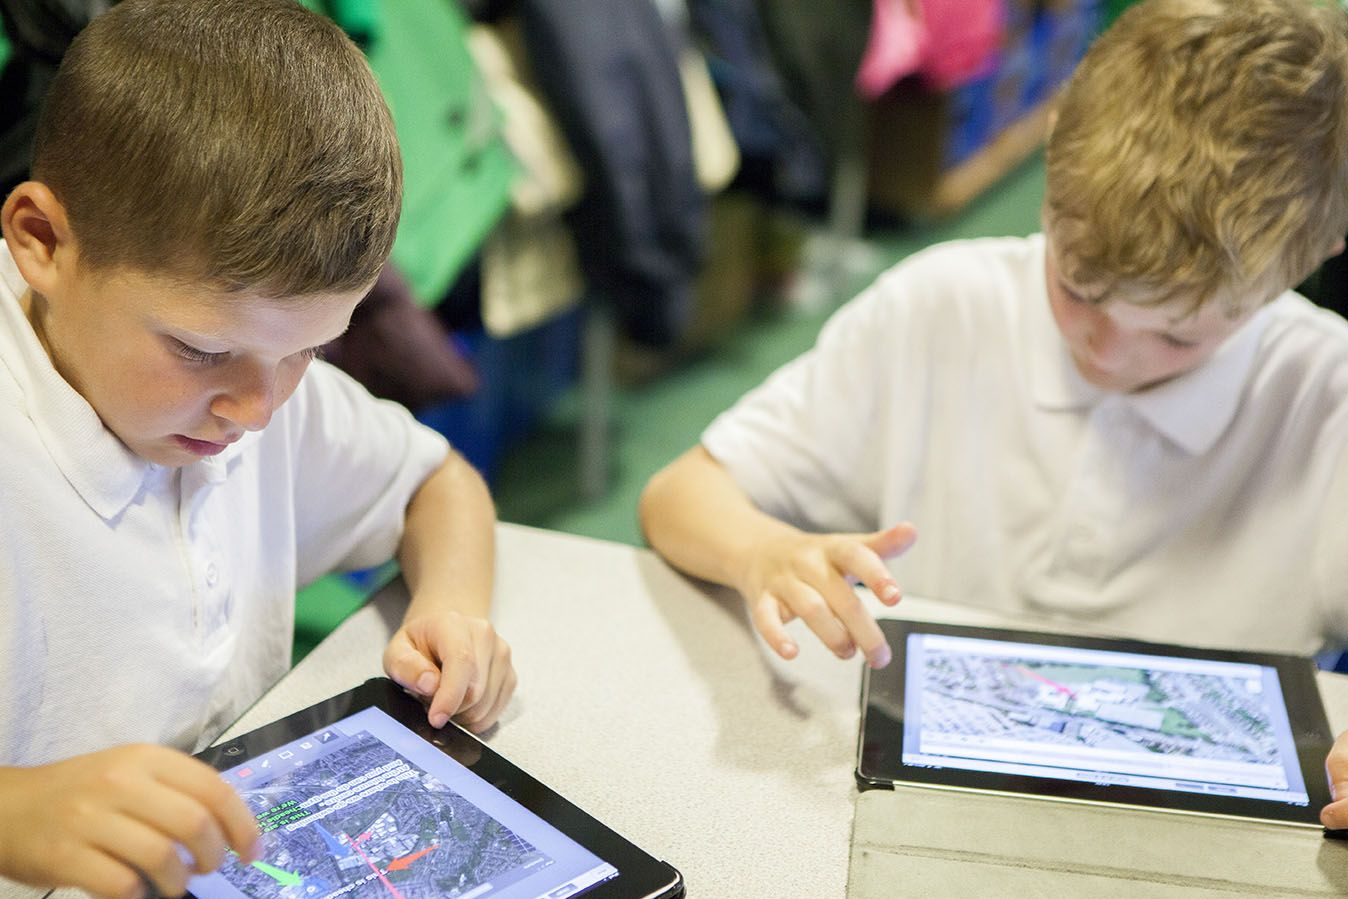 Apple iPad in the classroom